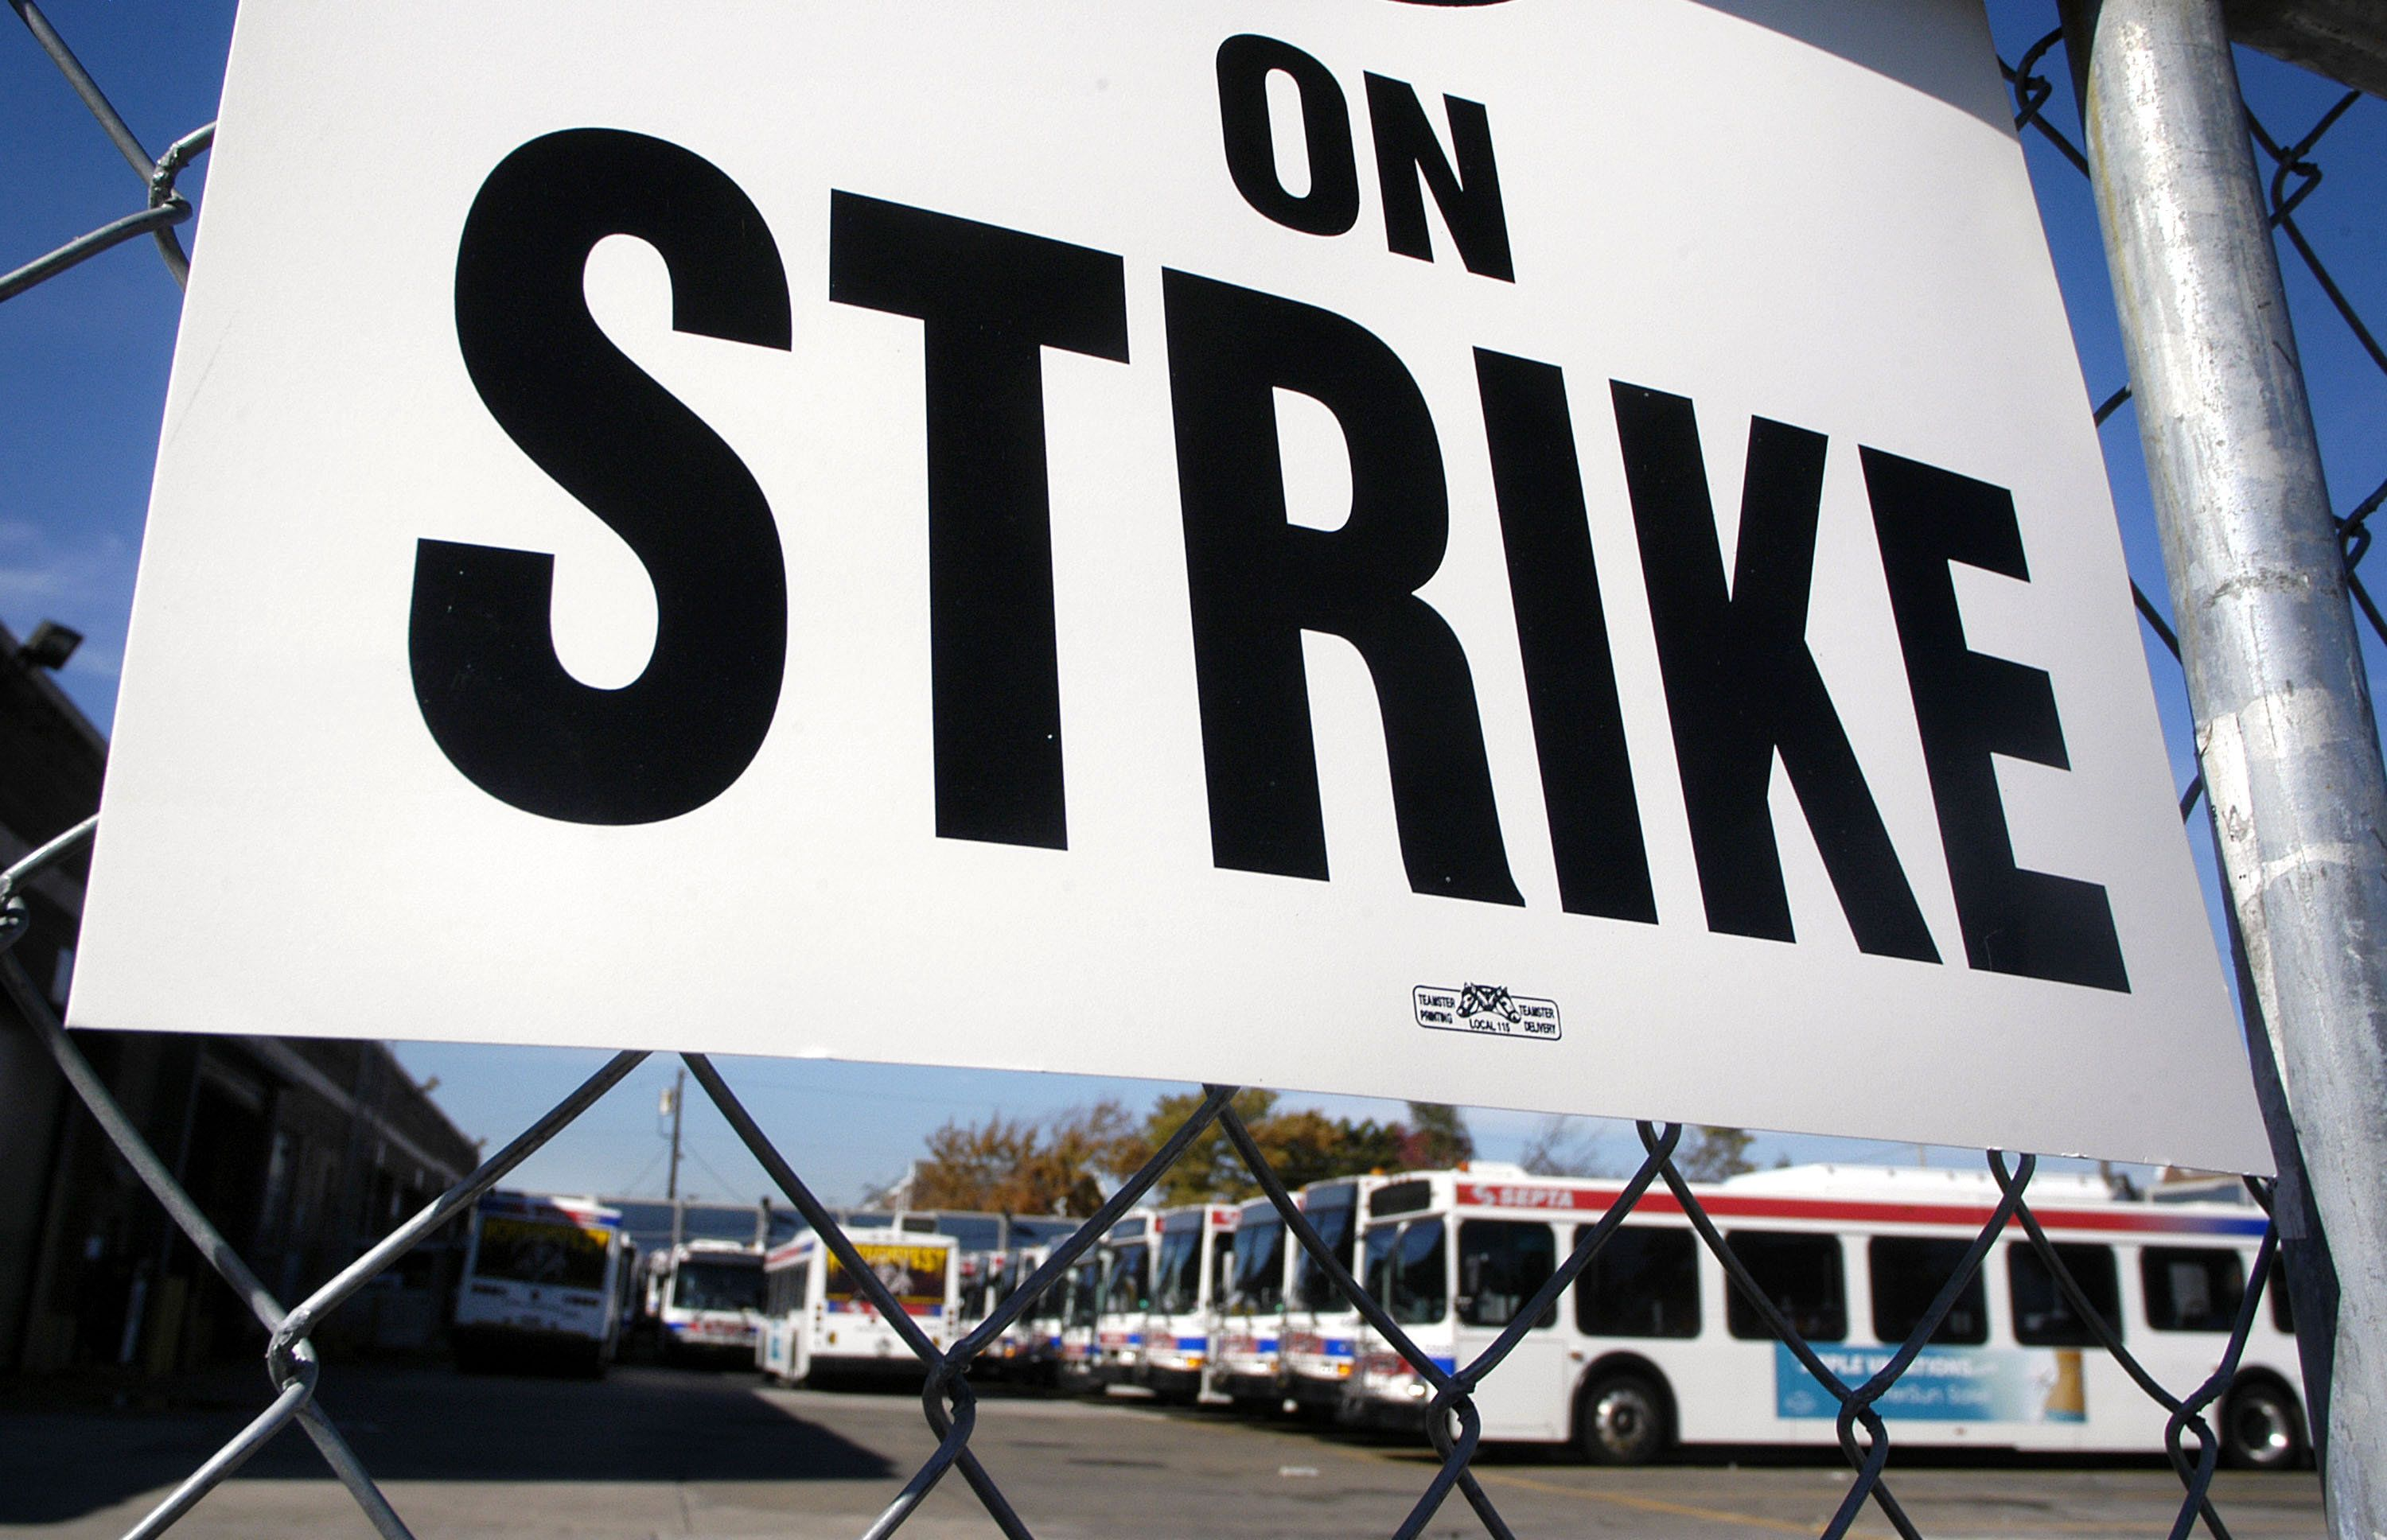 PHILADELPHIA - OCTOBER 31:  An 'On Strike' sign rests on a fence at the Comly Street Southeastern Pennsylvania Transportation Authority (SEPTA) Depot as members of Transport Workers Union Local 234 and United Transportation Union Local 1594 picket during a strike at SEPTA's Frankford Transportation Center October 31, 2005 in Philadelphia, Pennsylvania. Much of the Philadelphia region's mass transit system is shut down leaving some 400,000 subway, bus, and trolley riders without transportation. One of the major stumbling blocks in negotiations is SEPTA wants unionized workers to pay for a portion of their healthcare benefits. No new negotiation sessions are scheduled.  (Photo by William Thomas Cain/Getty Images)